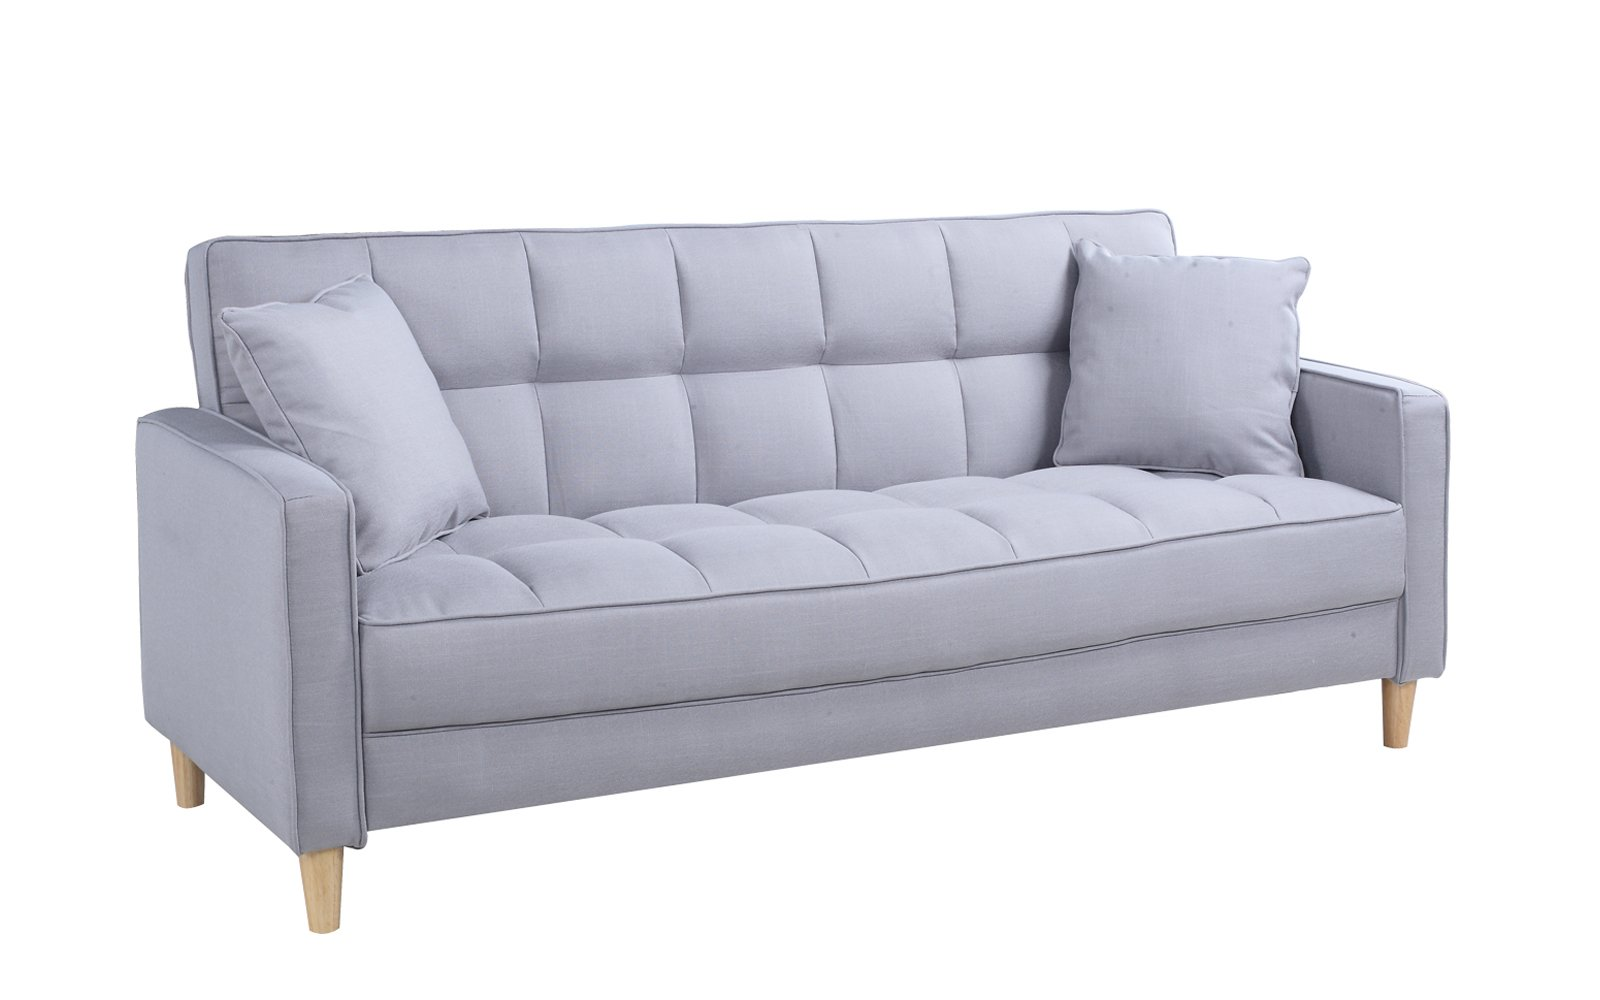 Divano Roma Furniture Modern Sofas, Light Grey - Small space mid-century style with 2 decorative pillows - Perfect for a small living room Tufted fabric upholstery on both, seat and back rest to give it a plush look and feel Available in a large variation of colors to best fit your decor and perfect size for a studio apartment or bedroom lounging - sofas-couches, living-room-furniture, living-room - 61BlZU9tHjL -